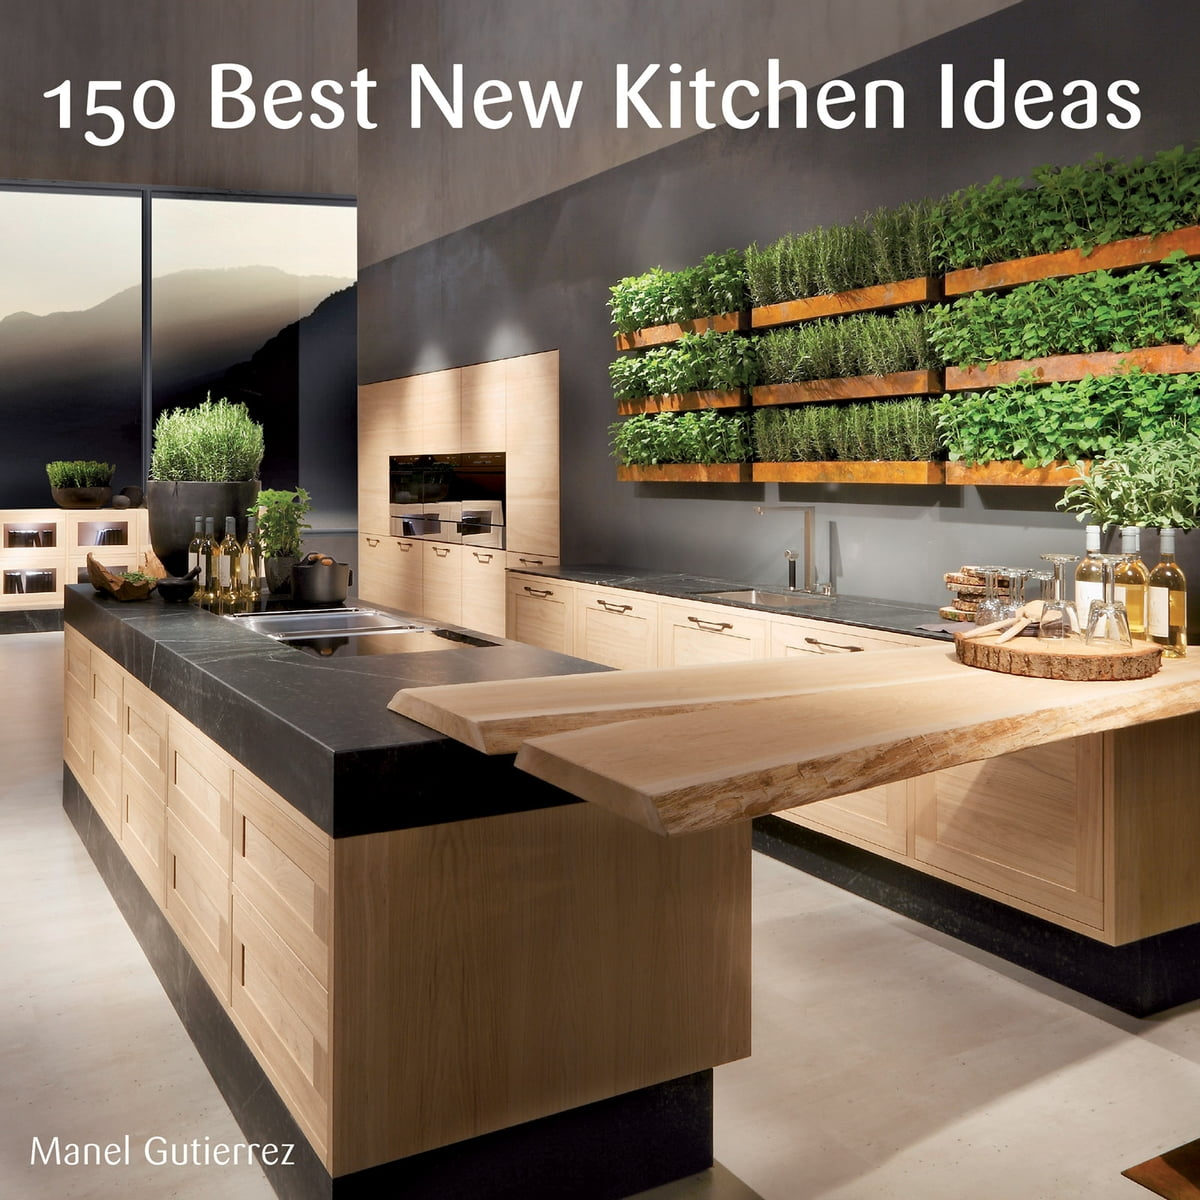 New Kitchen Ideas 150 Best New Kitchen Ideas Ebook By Manel Gutierrez Rakuten Kobo